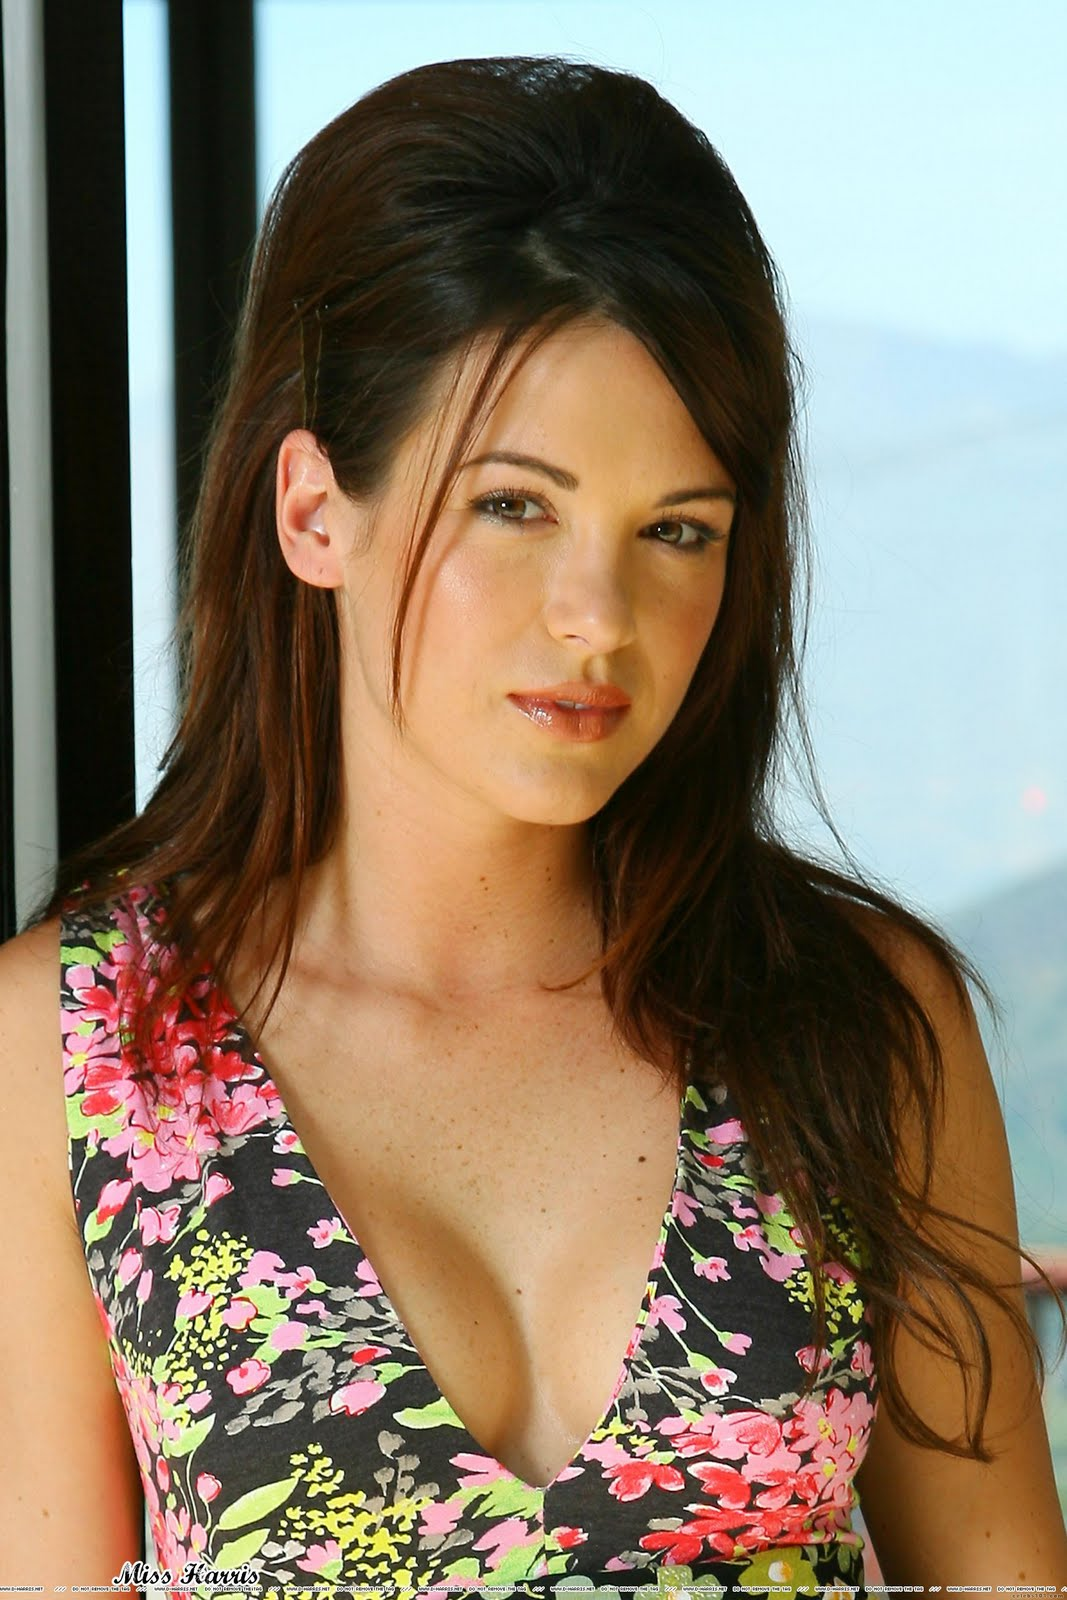 Danneel Ackles Biography Fashion And Styles